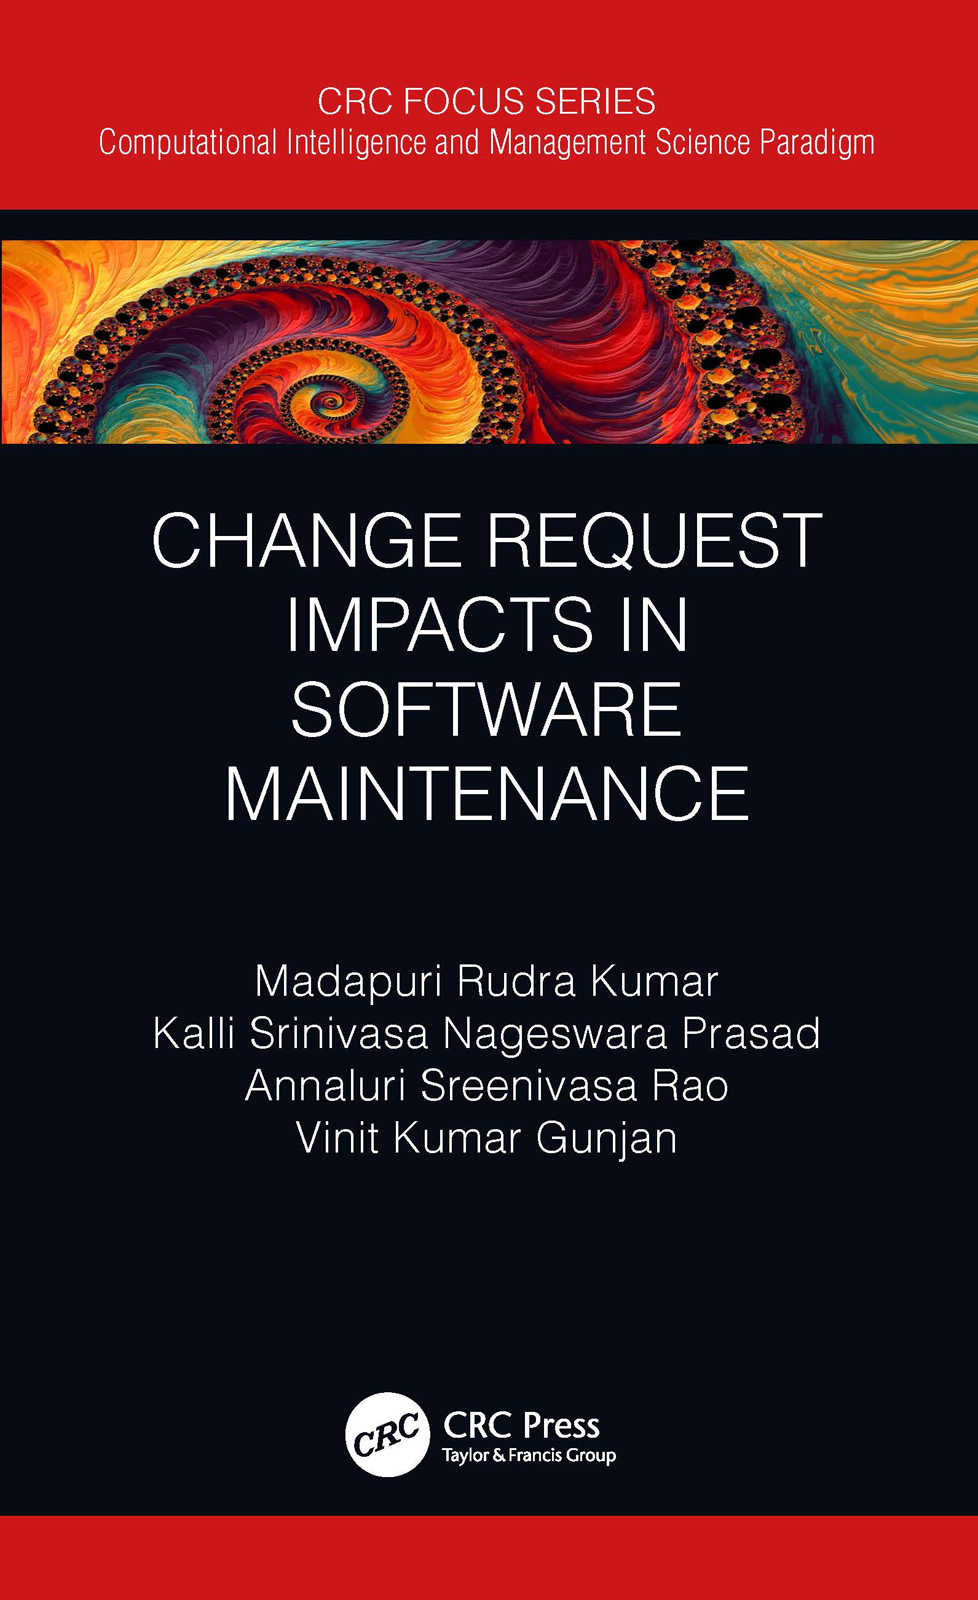 Change Request Impacts in Software Maintenance